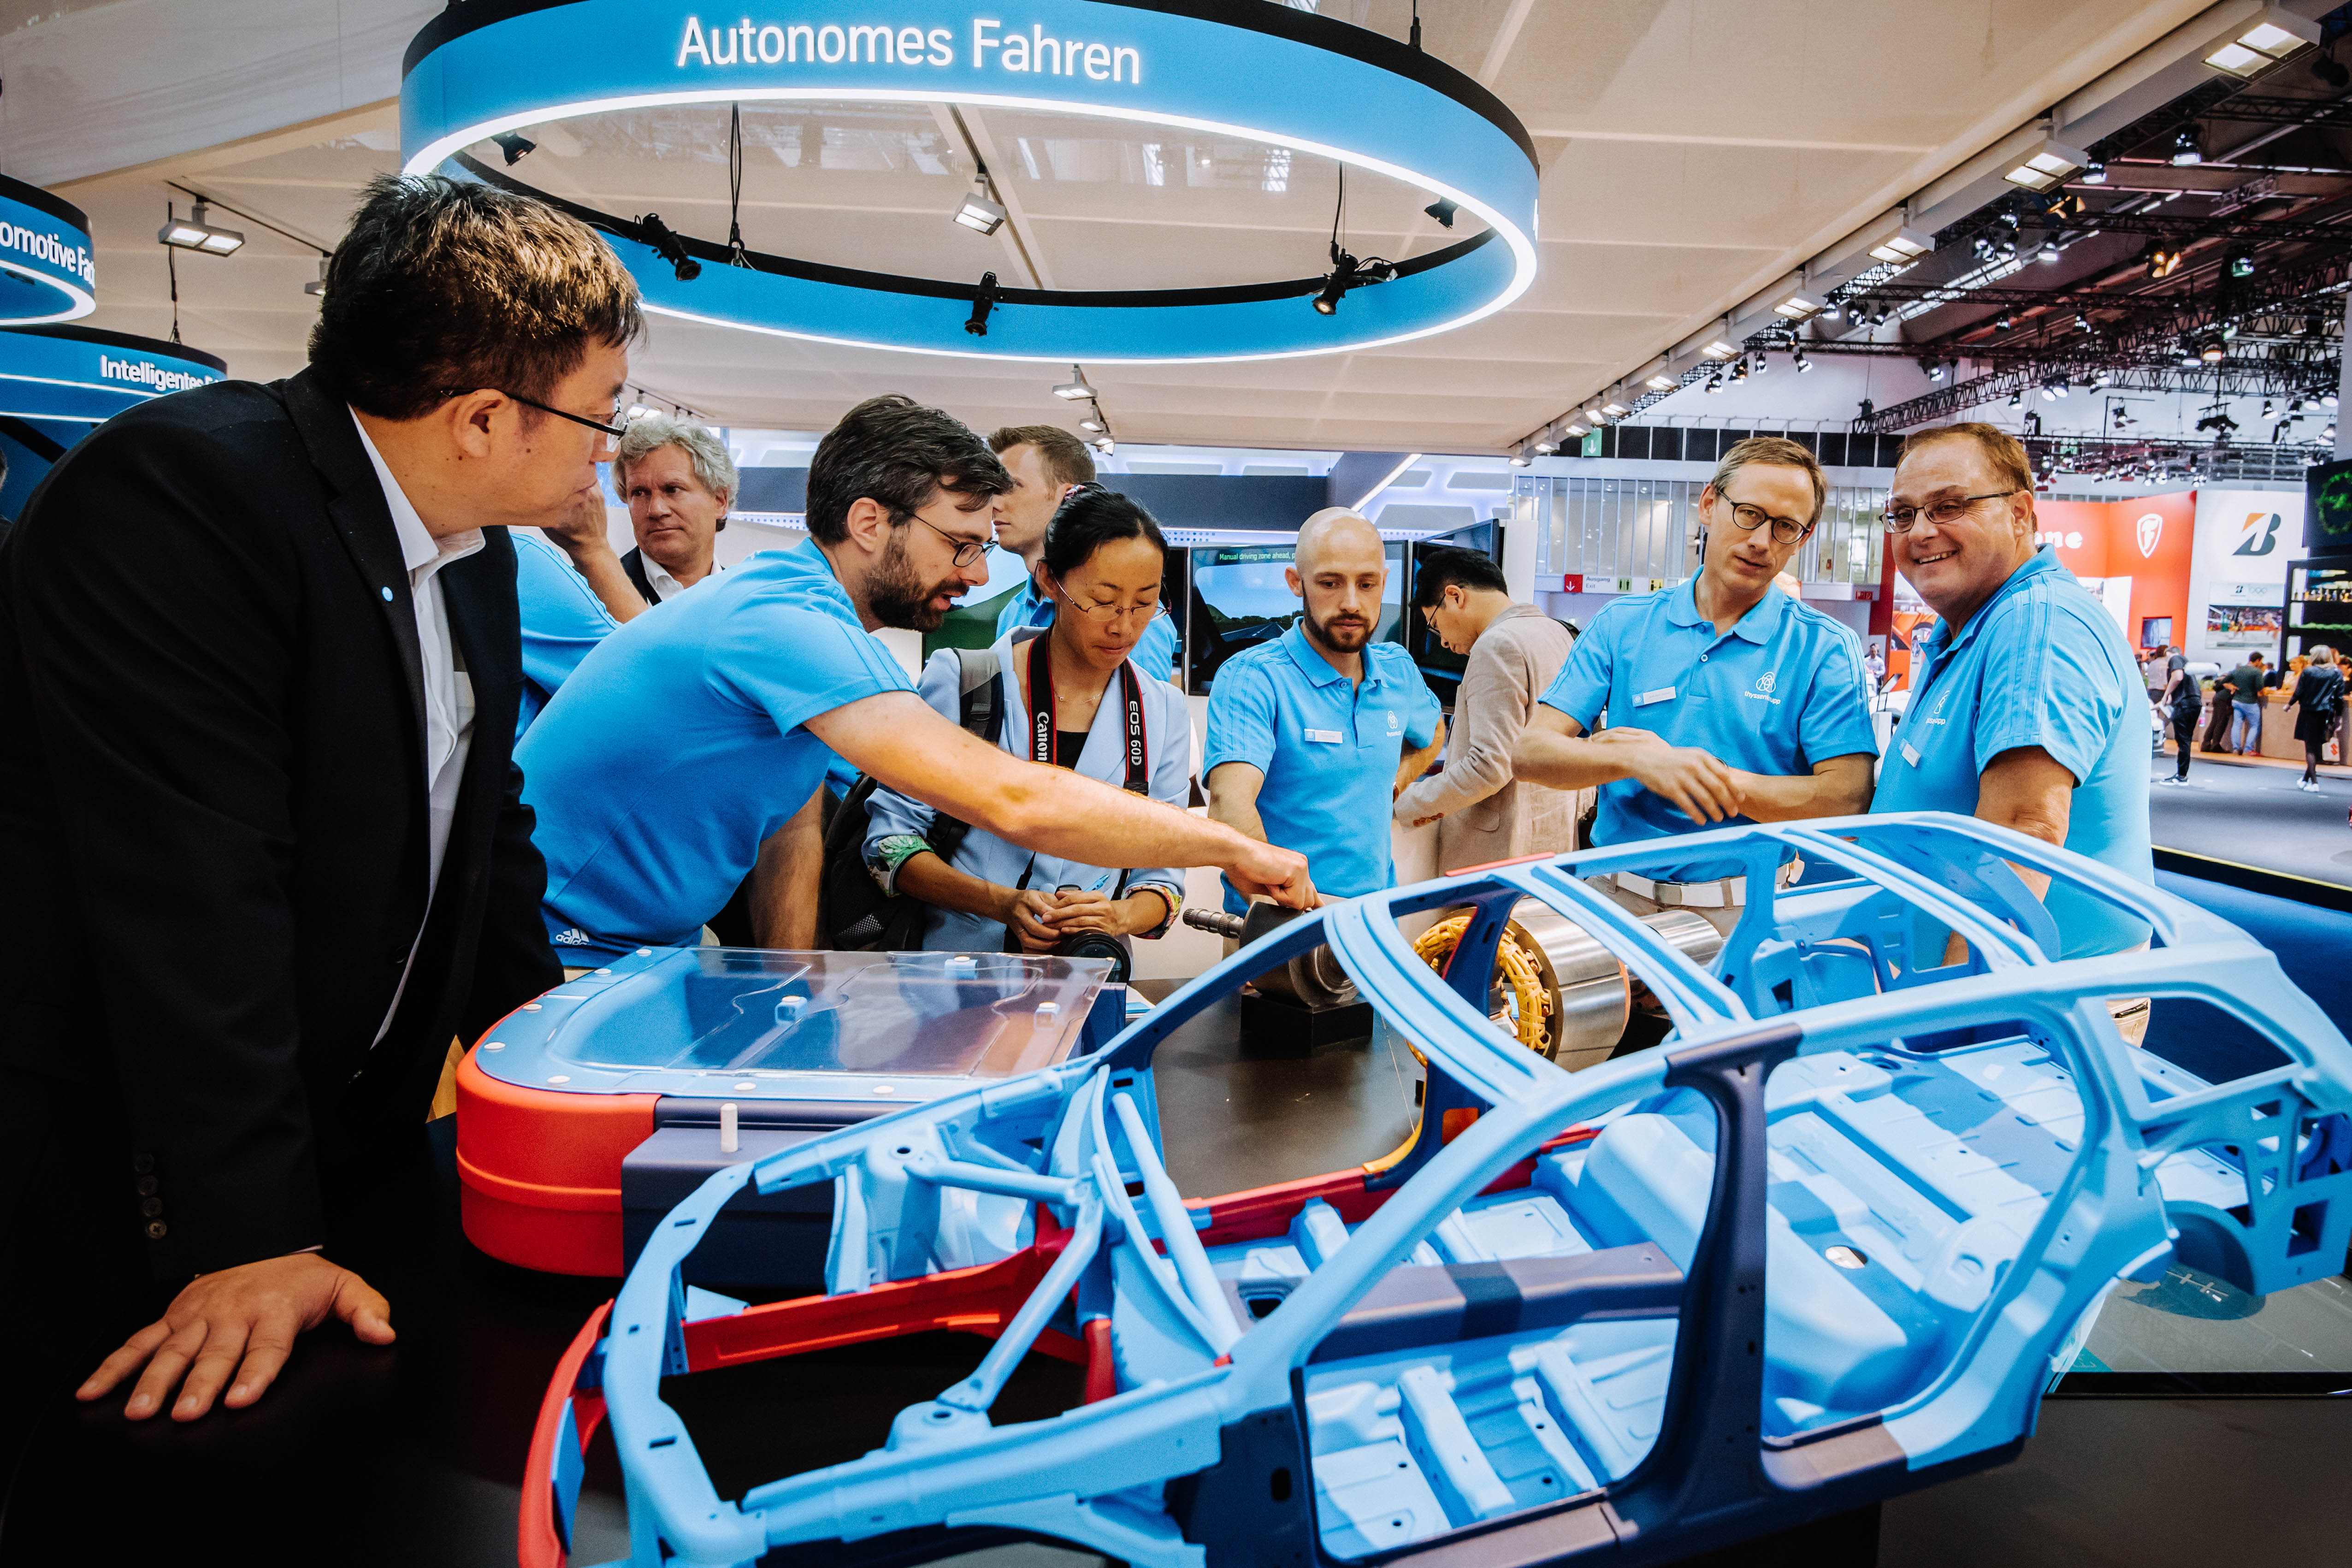 The German automobile industry association VDA showcases specialists and experts.